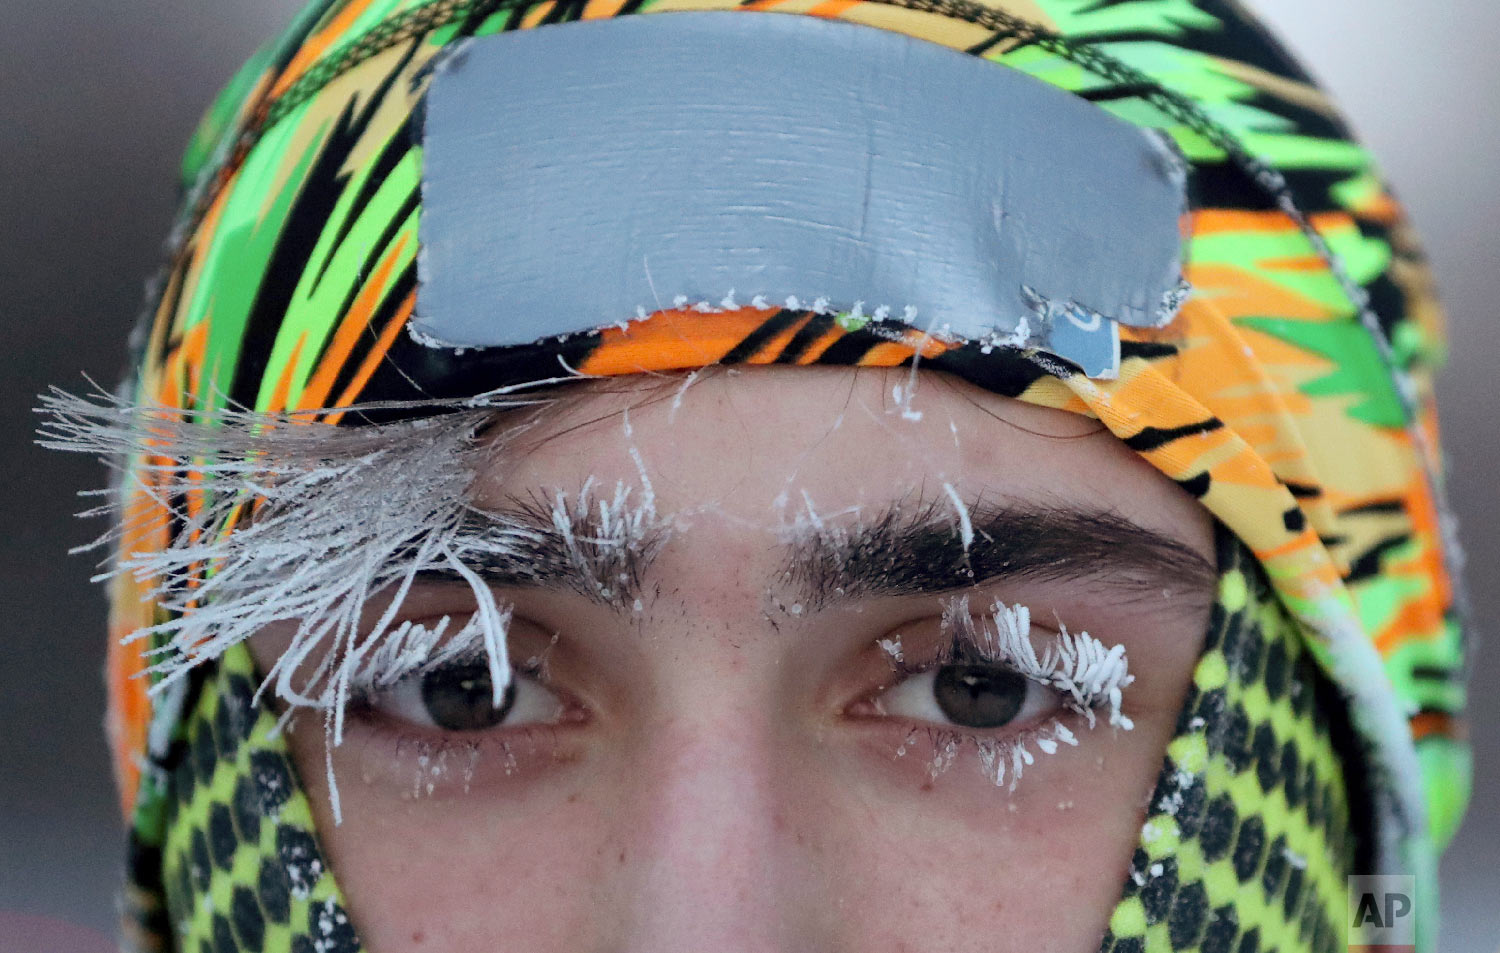 Frost covers part of the face of University of Minnesota student Daniel Dylla during a morning jog along Mississippi River Parkway Tuesday, Jan. 29, 2019, in Minneapolis. (David Joles/Star Tribune via AP)